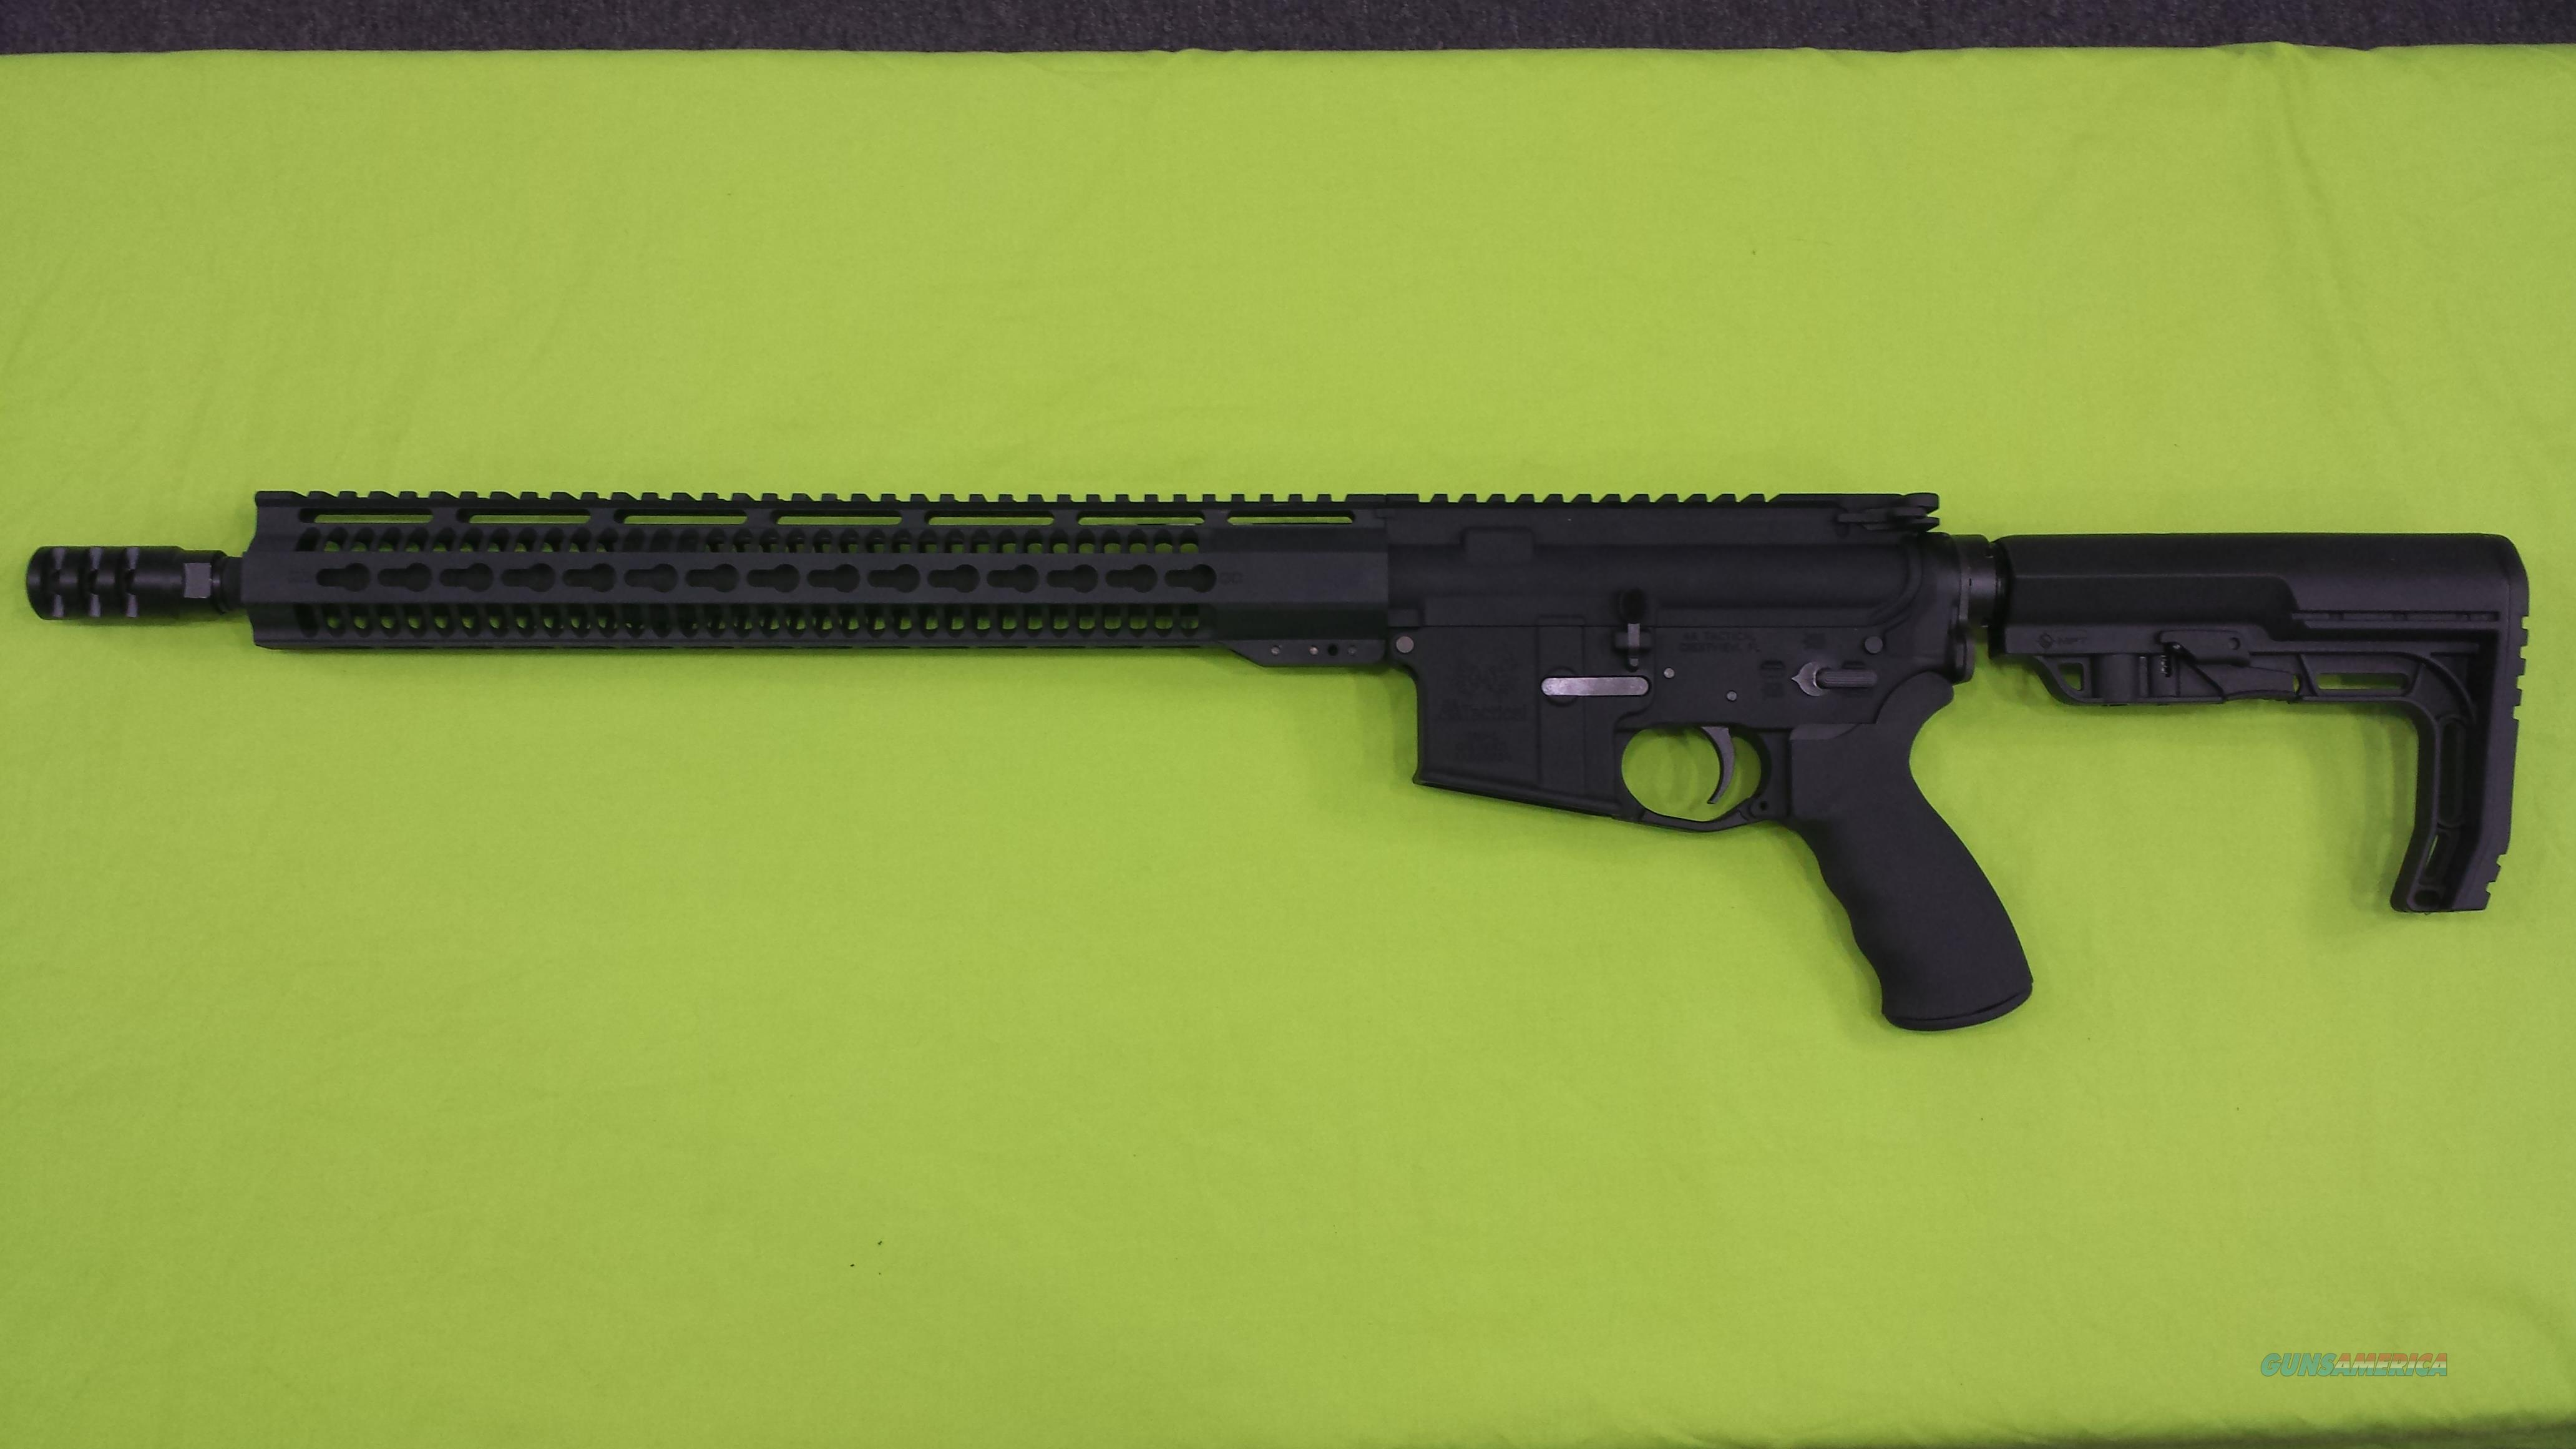 AA TACTICAL TAC-L 300BLK 300 AAC MFT MINIMALIST BLACK AR15  Guns > Rifles > AR-15 Rifles - Small Manufacturers > Complete Rifle